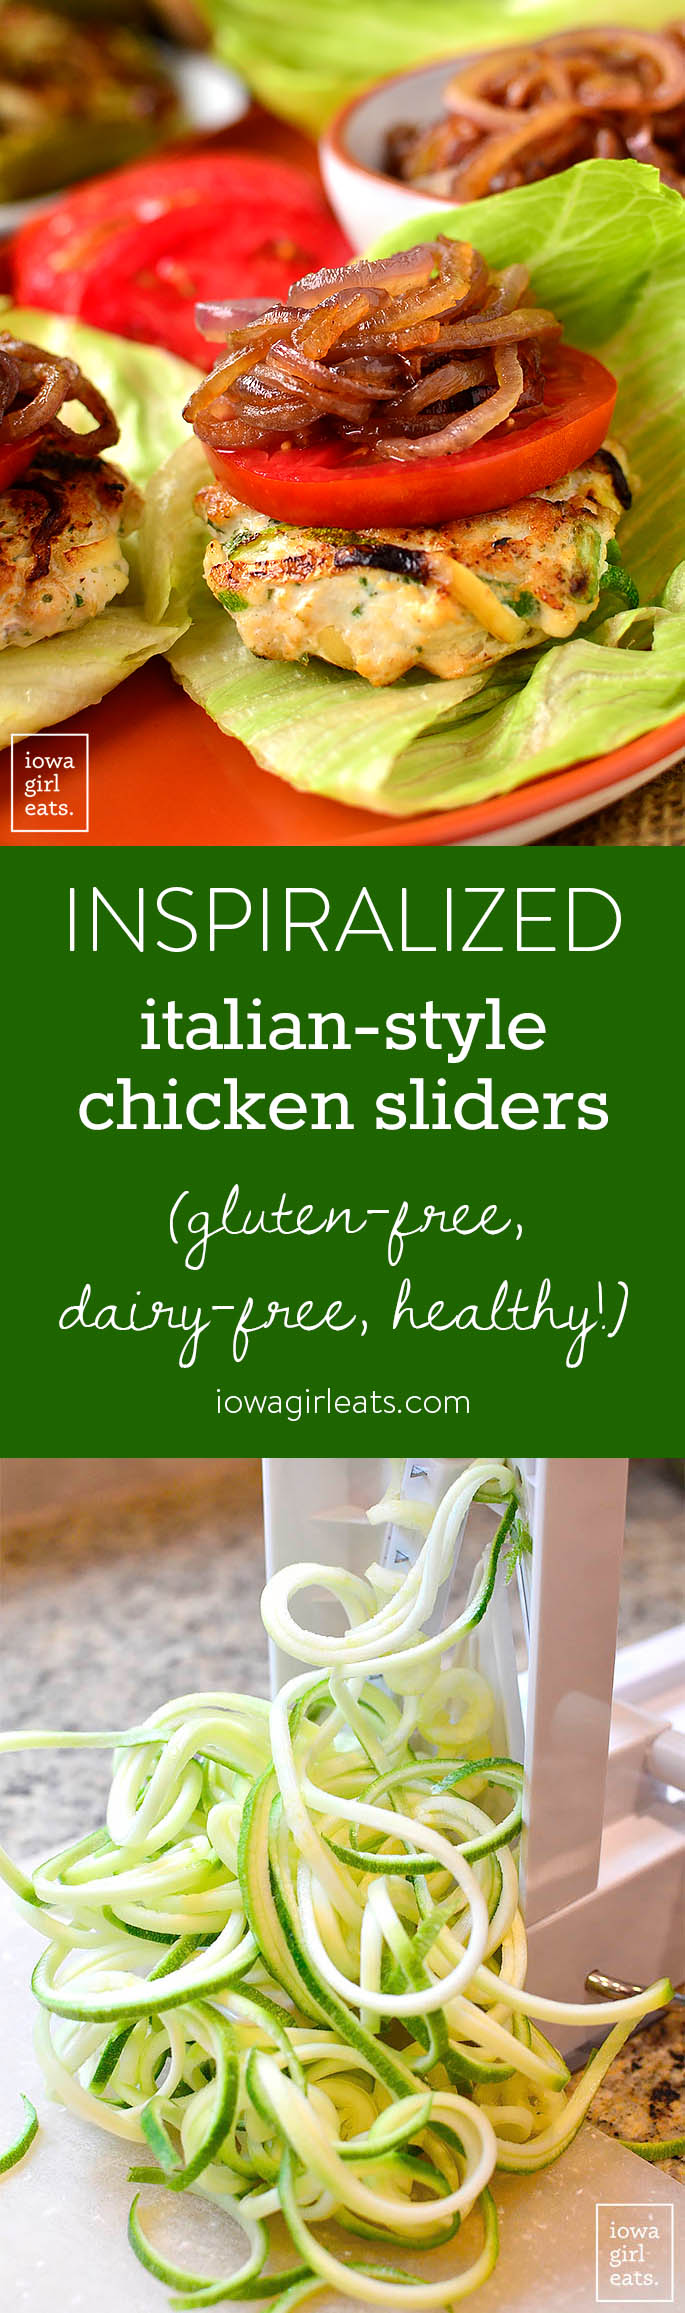 Italian-Style Chicken Sliders are made fun and healthy by incorporating spiralized zucchini in the patties and caramelized onions to pile on top! These gluten-free, family-friendly burgers will be a hit at your house! | iowagirleats.com